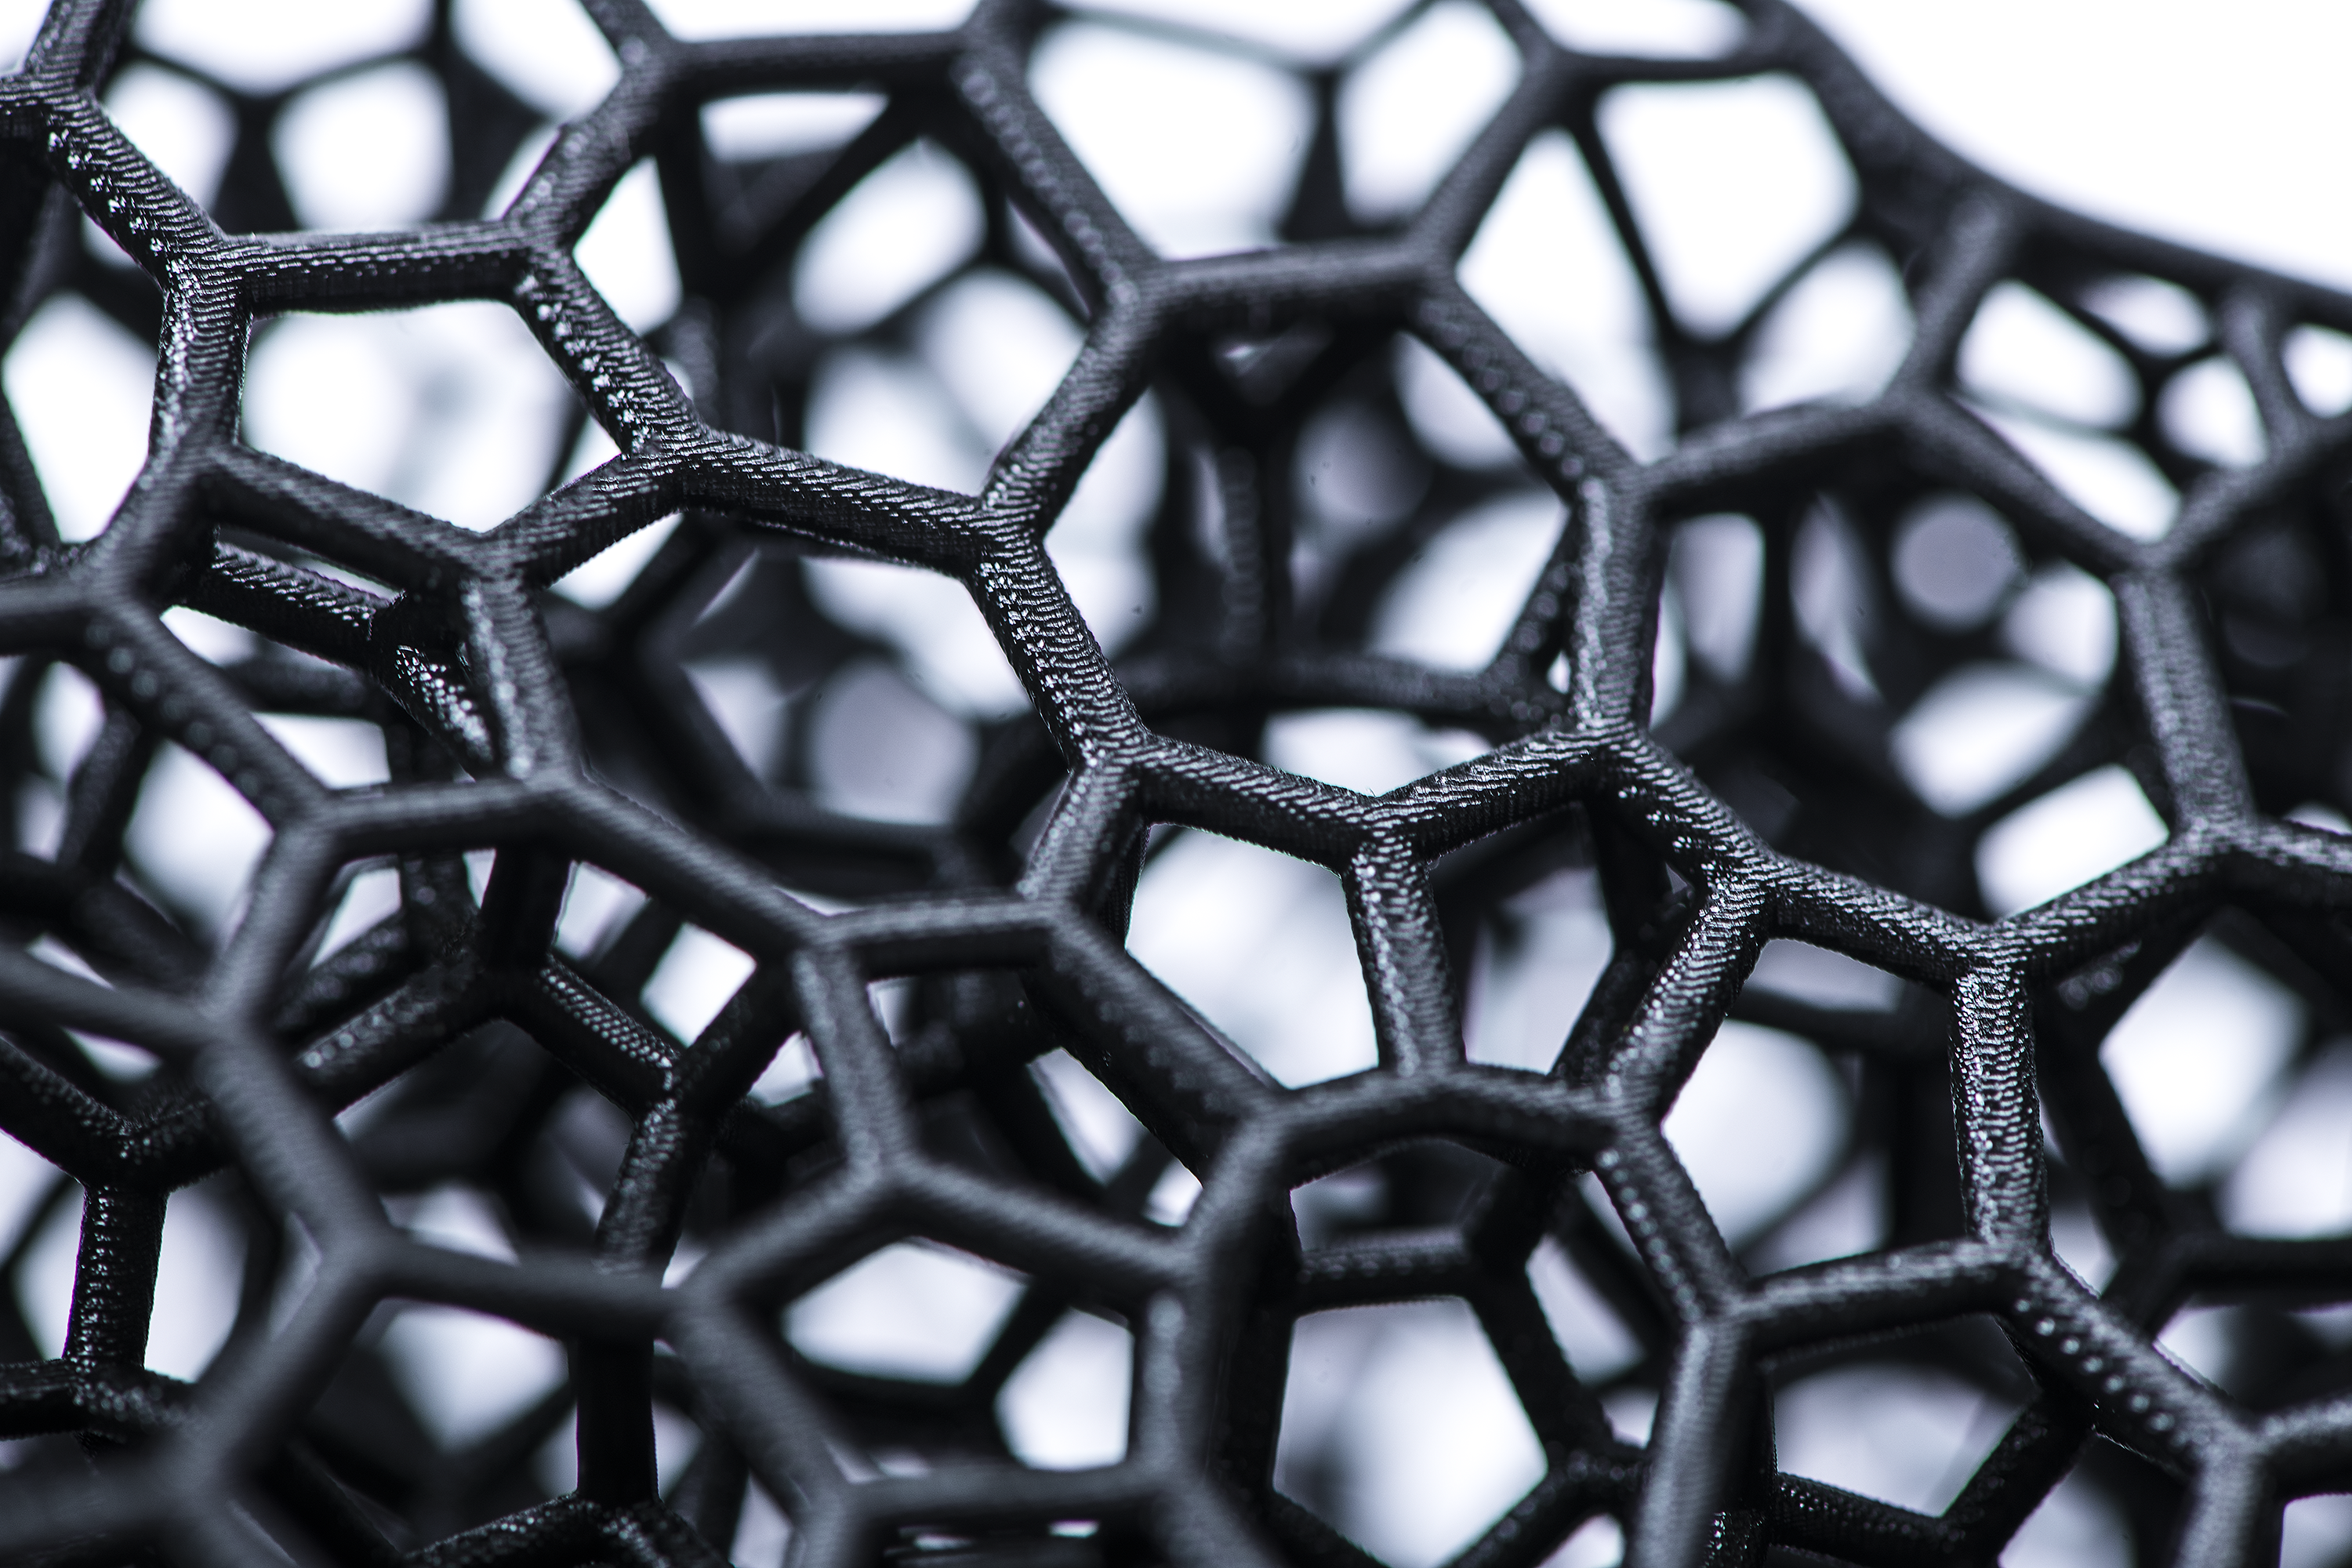 3d Printing Carbon Seeks To Raise Up To 300 Million In Series E Funding Https 3dprintingindustry Com News Carbon 3d Printing 3d Printing Industry Prints